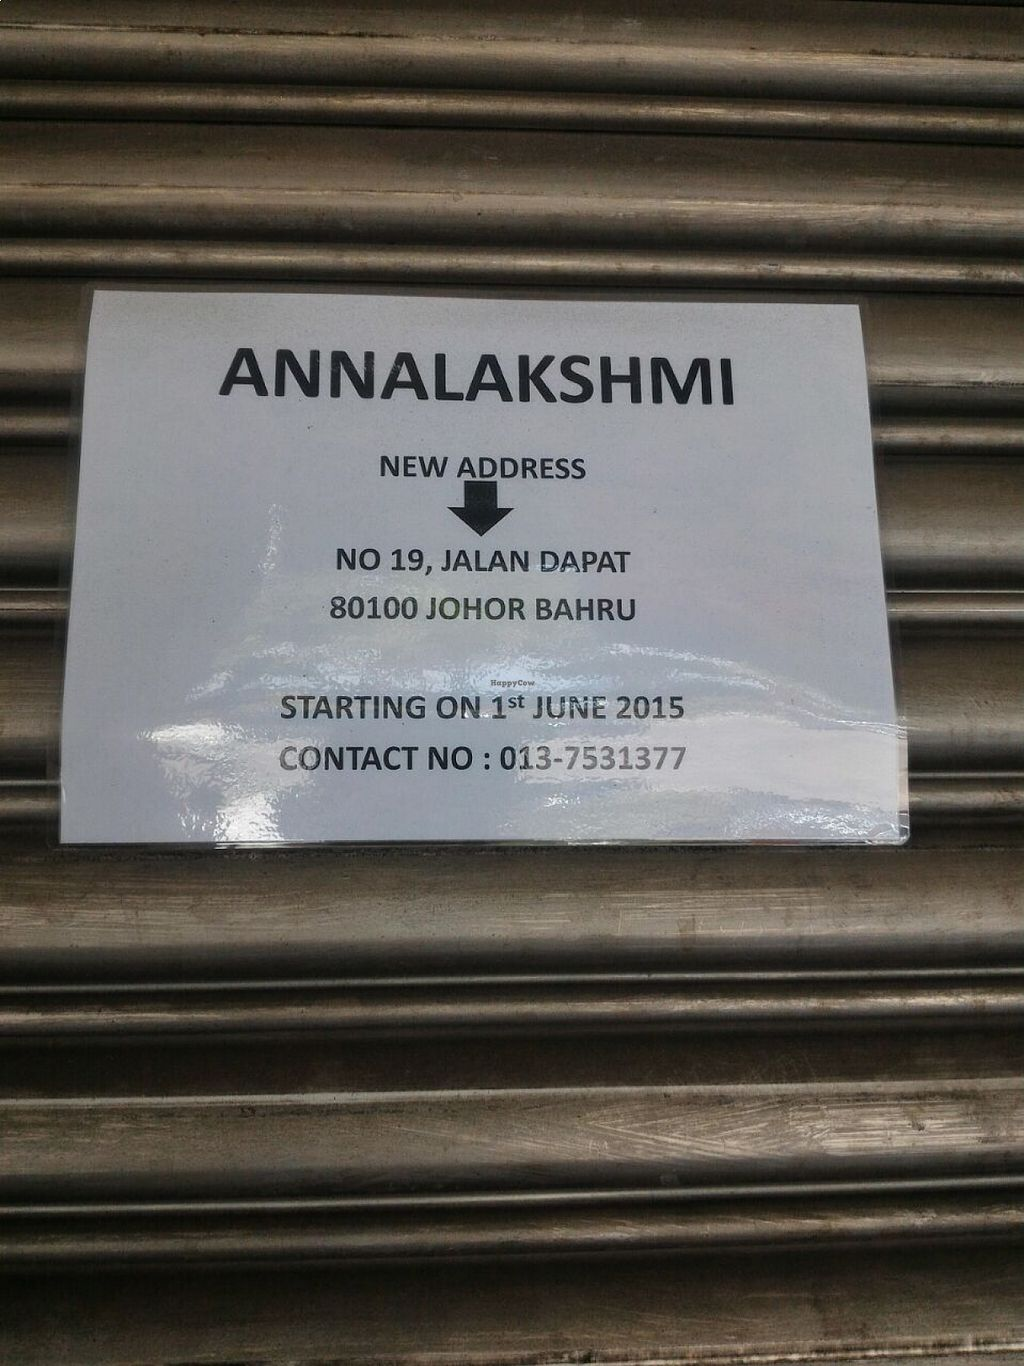 """Photo of Annalakshmi Restaurant  by <a href=""""/members/profile/ouikouik"""">ouikouik</a> <br/>moved as of 1 june 2015 <br/> August 19, 2015  - <a href='/contact/abuse/image/23250/114250'>Report</a>"""